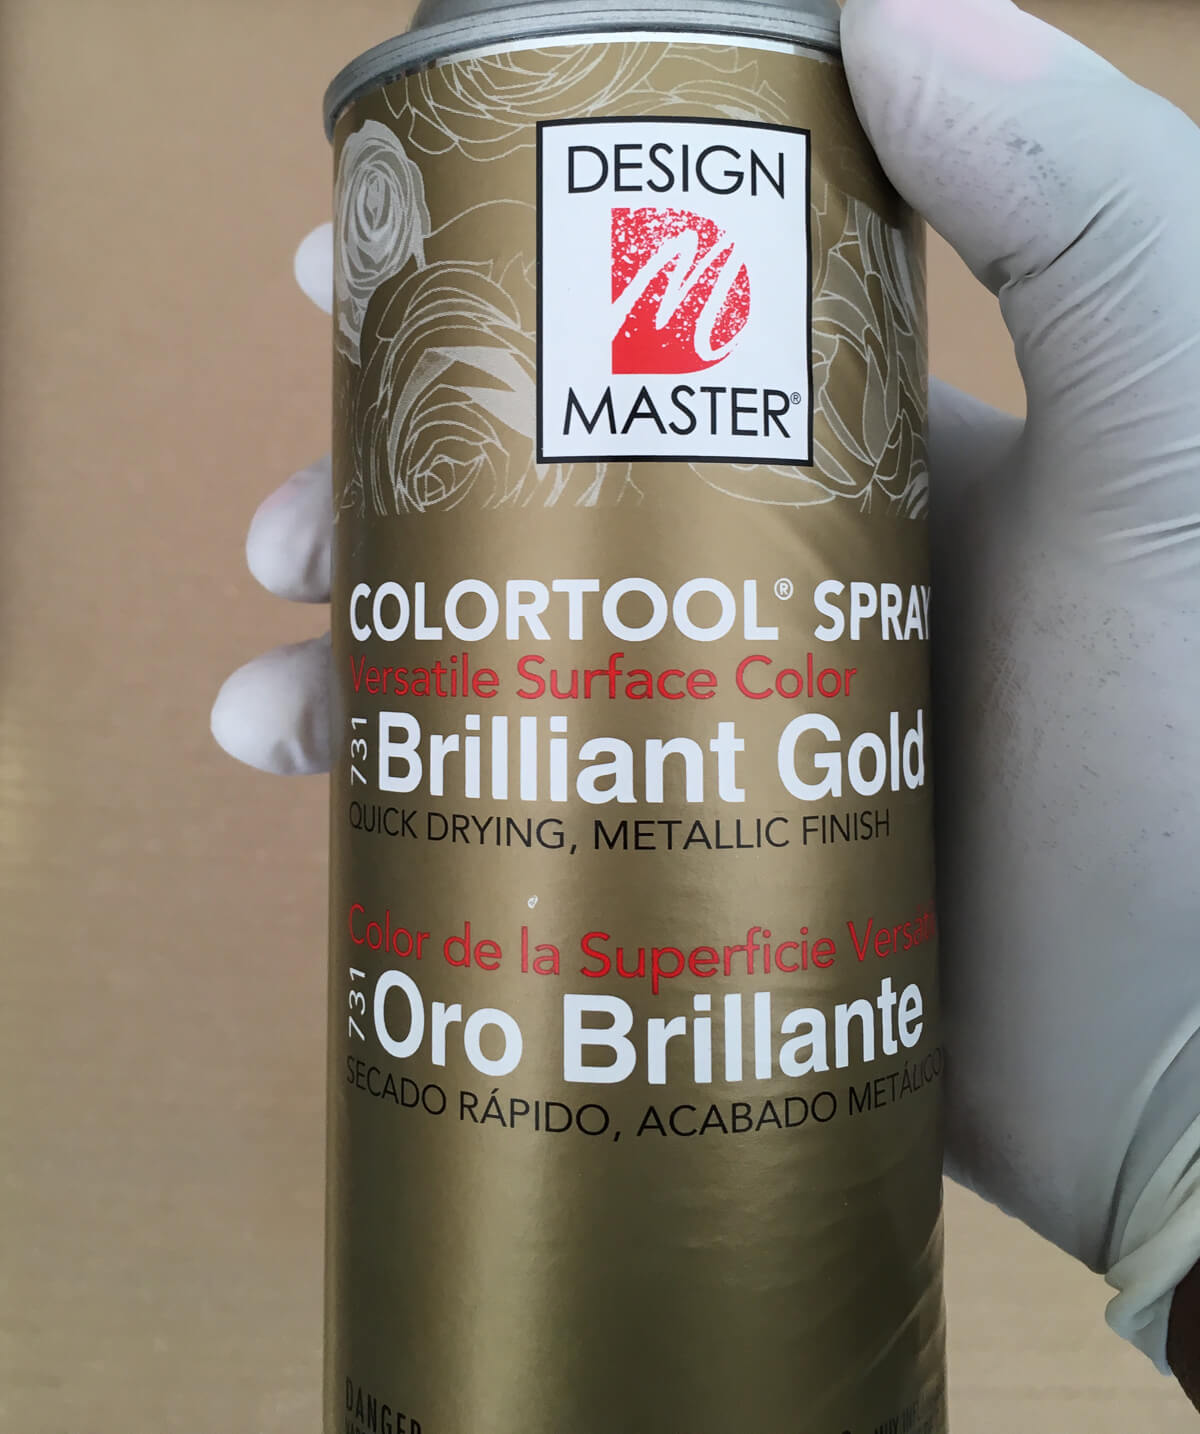 My favorite gold spray paint!